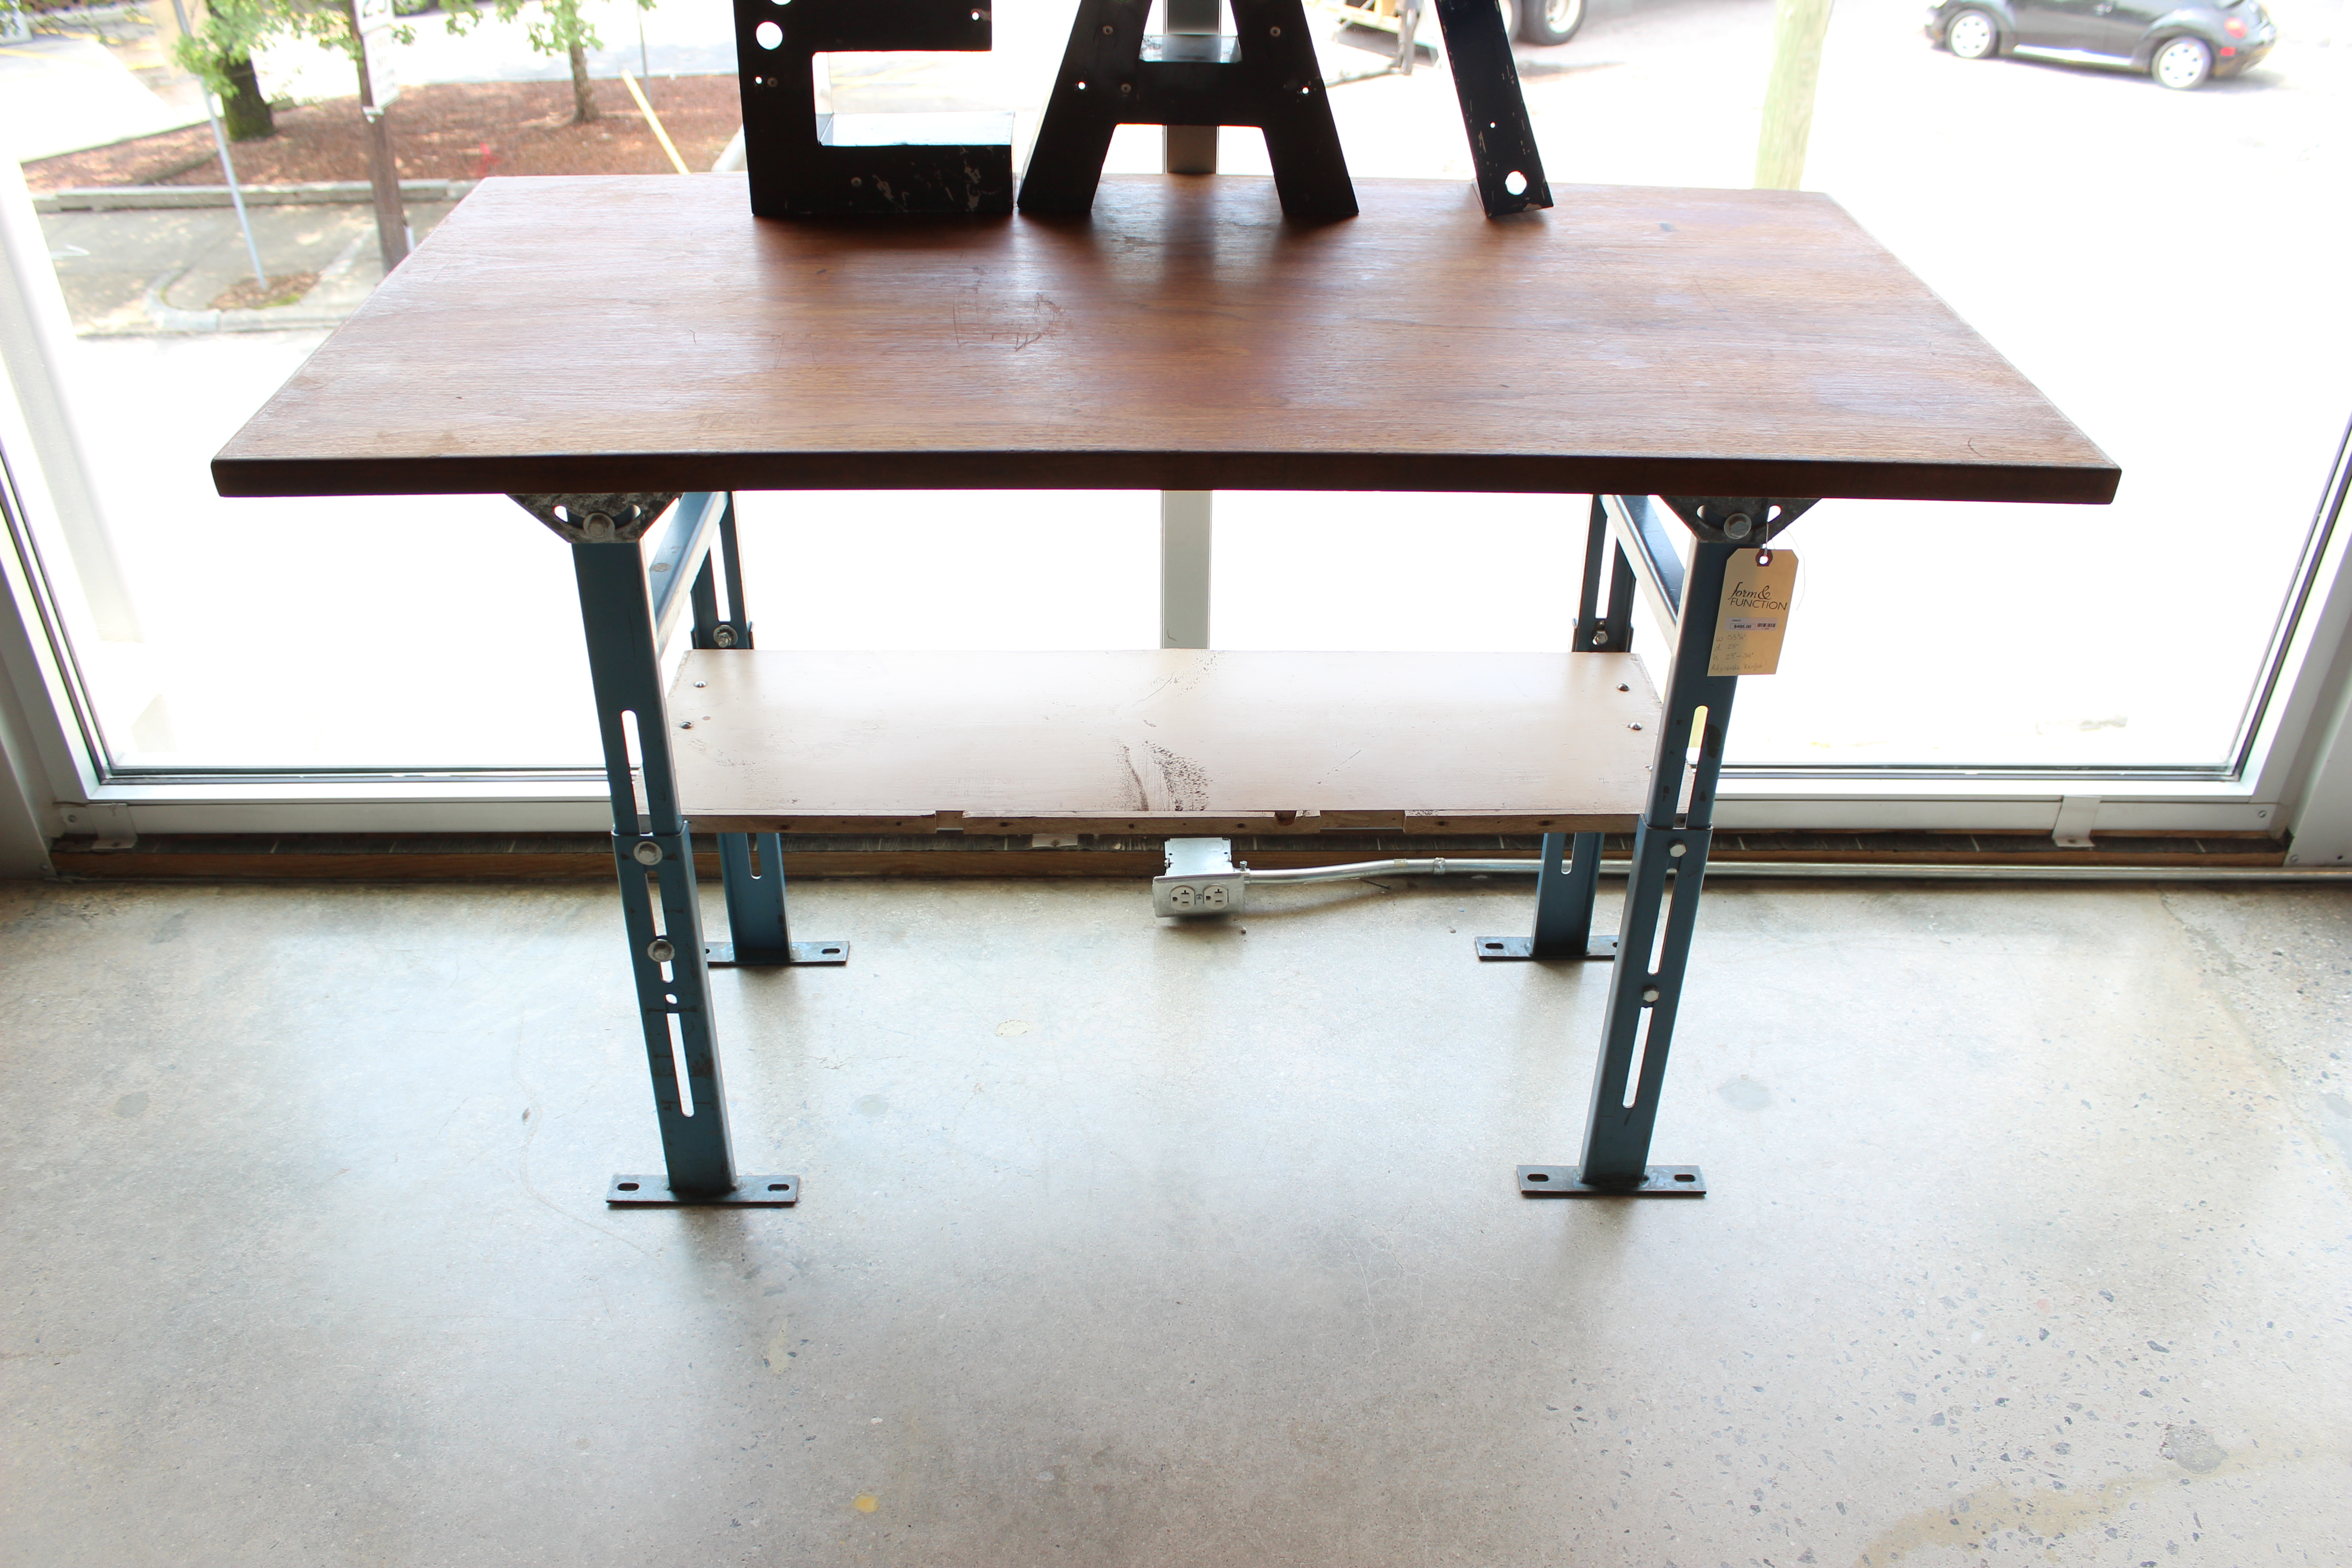 Kitchen tables raleigh nctchen island form function chalk kitchen island form amp function watchthetrailerfo